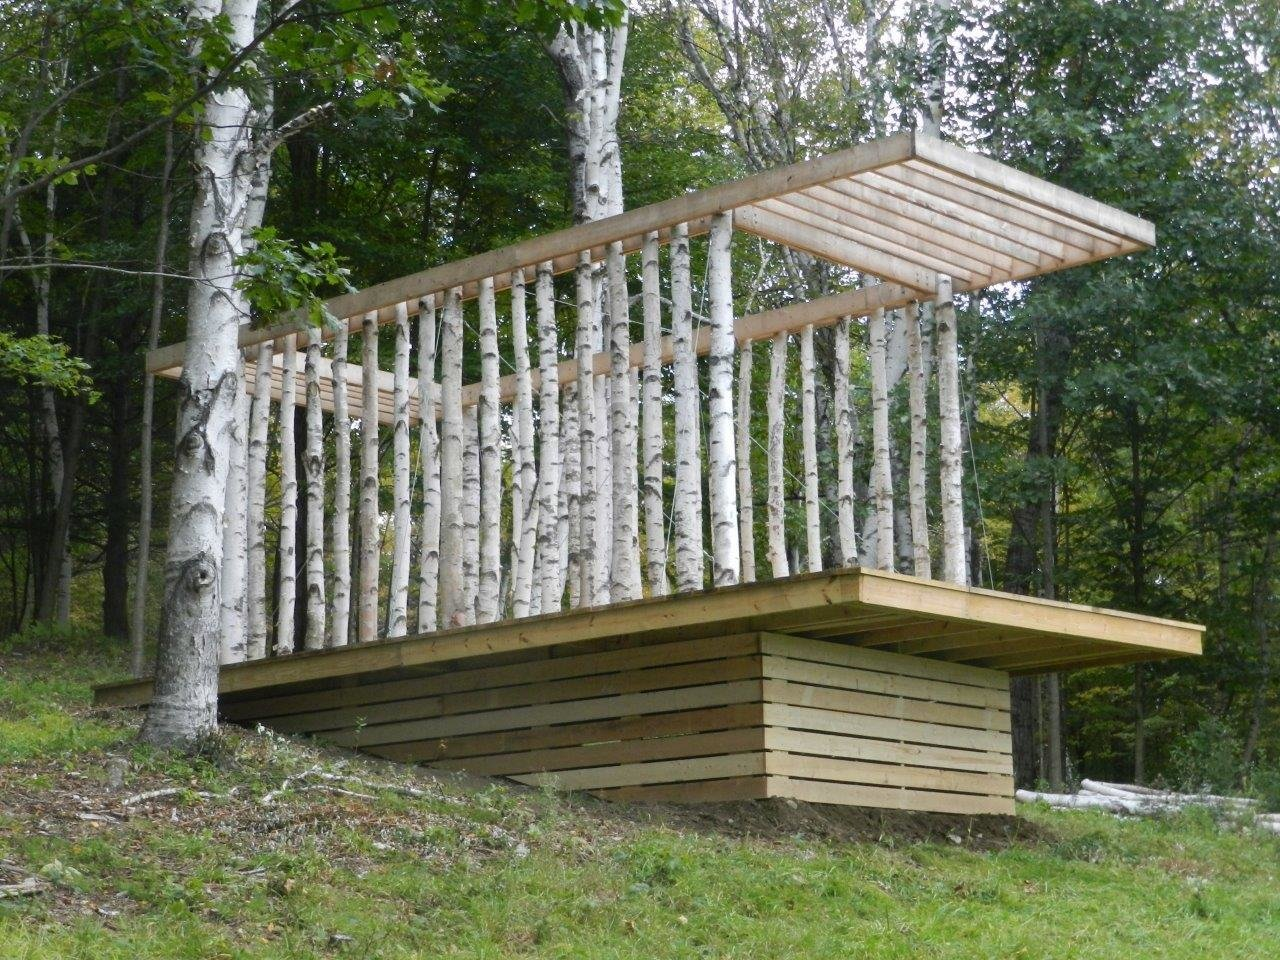 The pavilion is framed with 34 lenghs of timber, each about 8 inches in diameter and cut to a length of 9 feet. Photo courtesy of Moskow Linn Architects.  Photo 3 of 7 in Aspiring Architects Build a Pavilion in the Vermont Forest